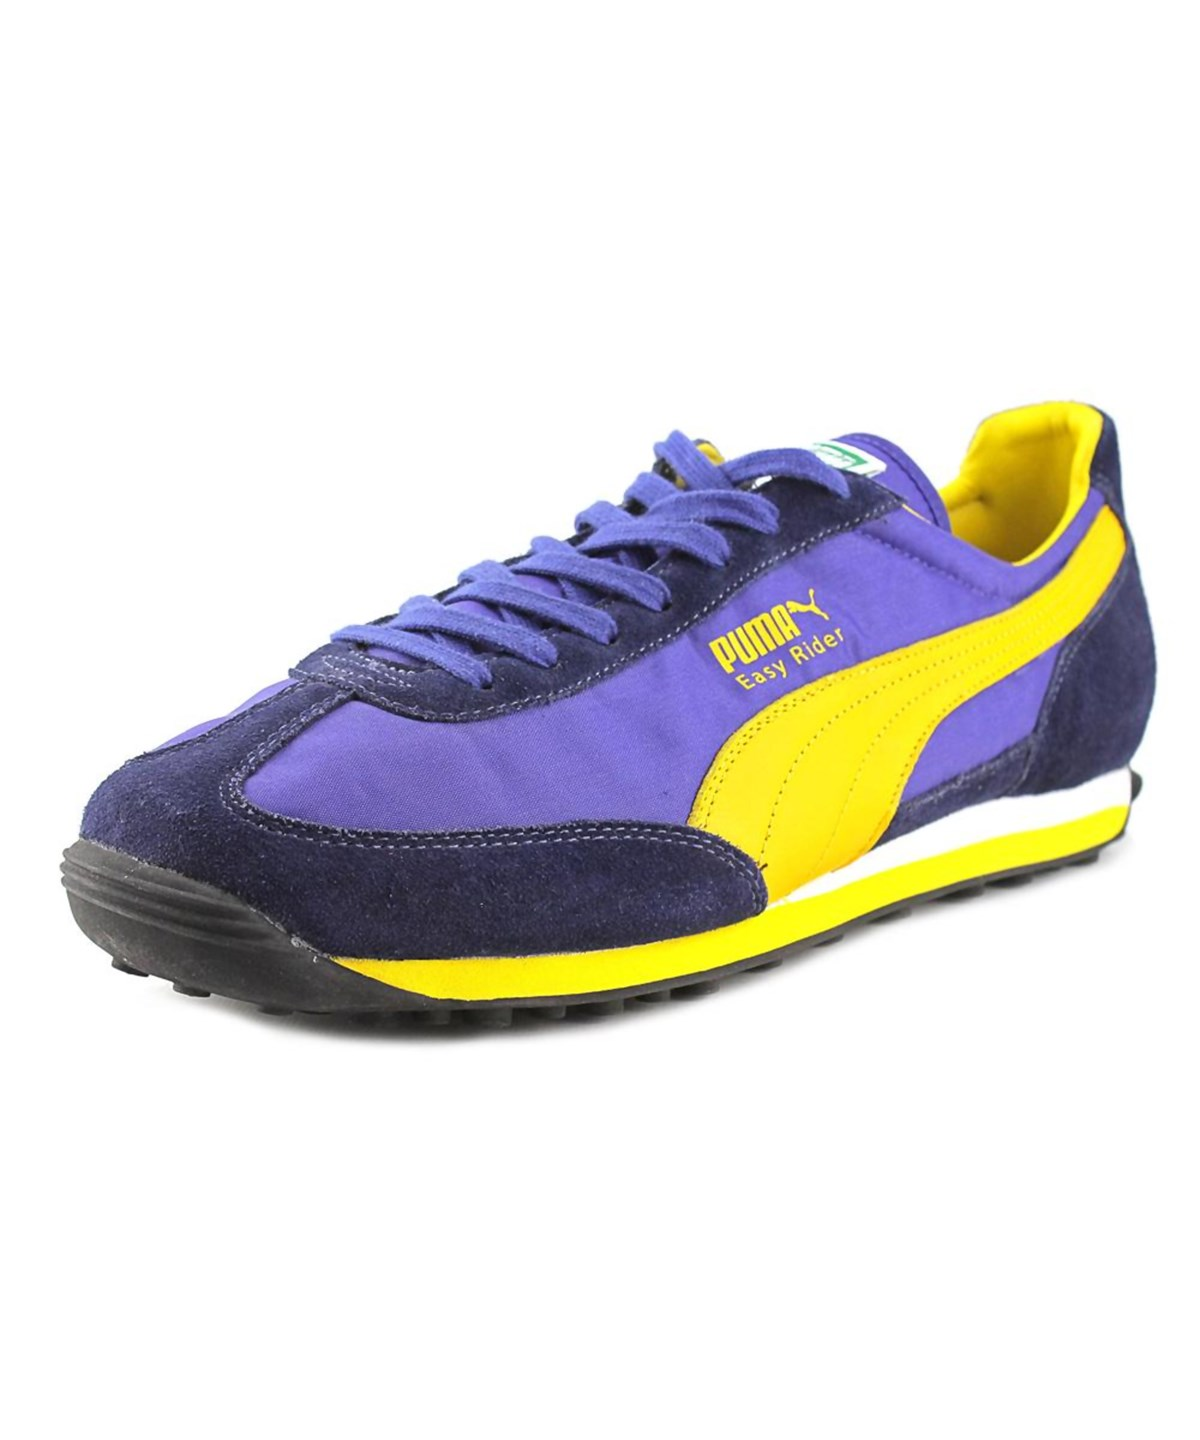 Puma Easy Rider 78 Men Synthetic Blue Fashion Sneakers'